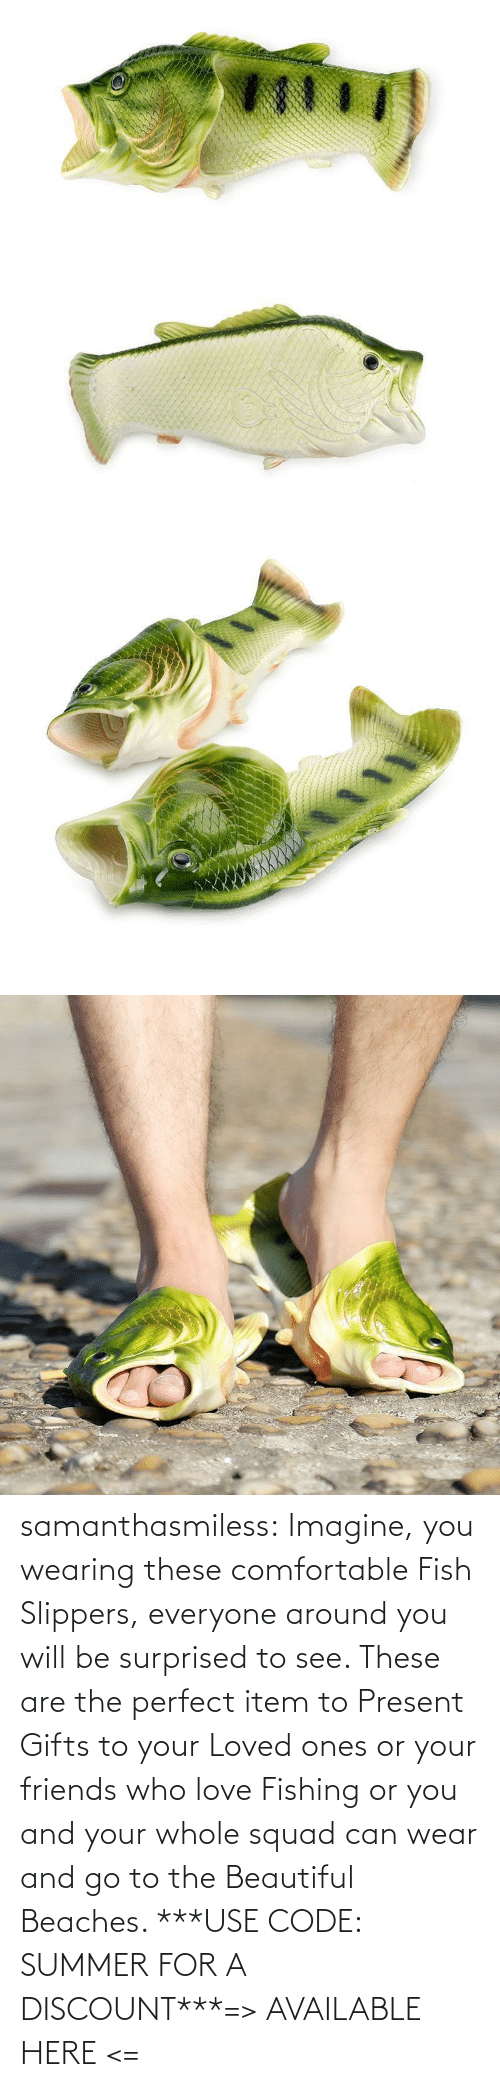 imagine: samanthasmiless:  Imagine, you wearing these comfortable Fish Slippers, everyone around you will be surprised to see. These are the perfect item to Present Gifts to your Loved ones or your friends who love Fishing or you and your whole squad can wear and go to the Beautiful Beaches. ***USE CODE: SUMMER FOR A DISCOUNT***=> AVAILABLE HERE <=